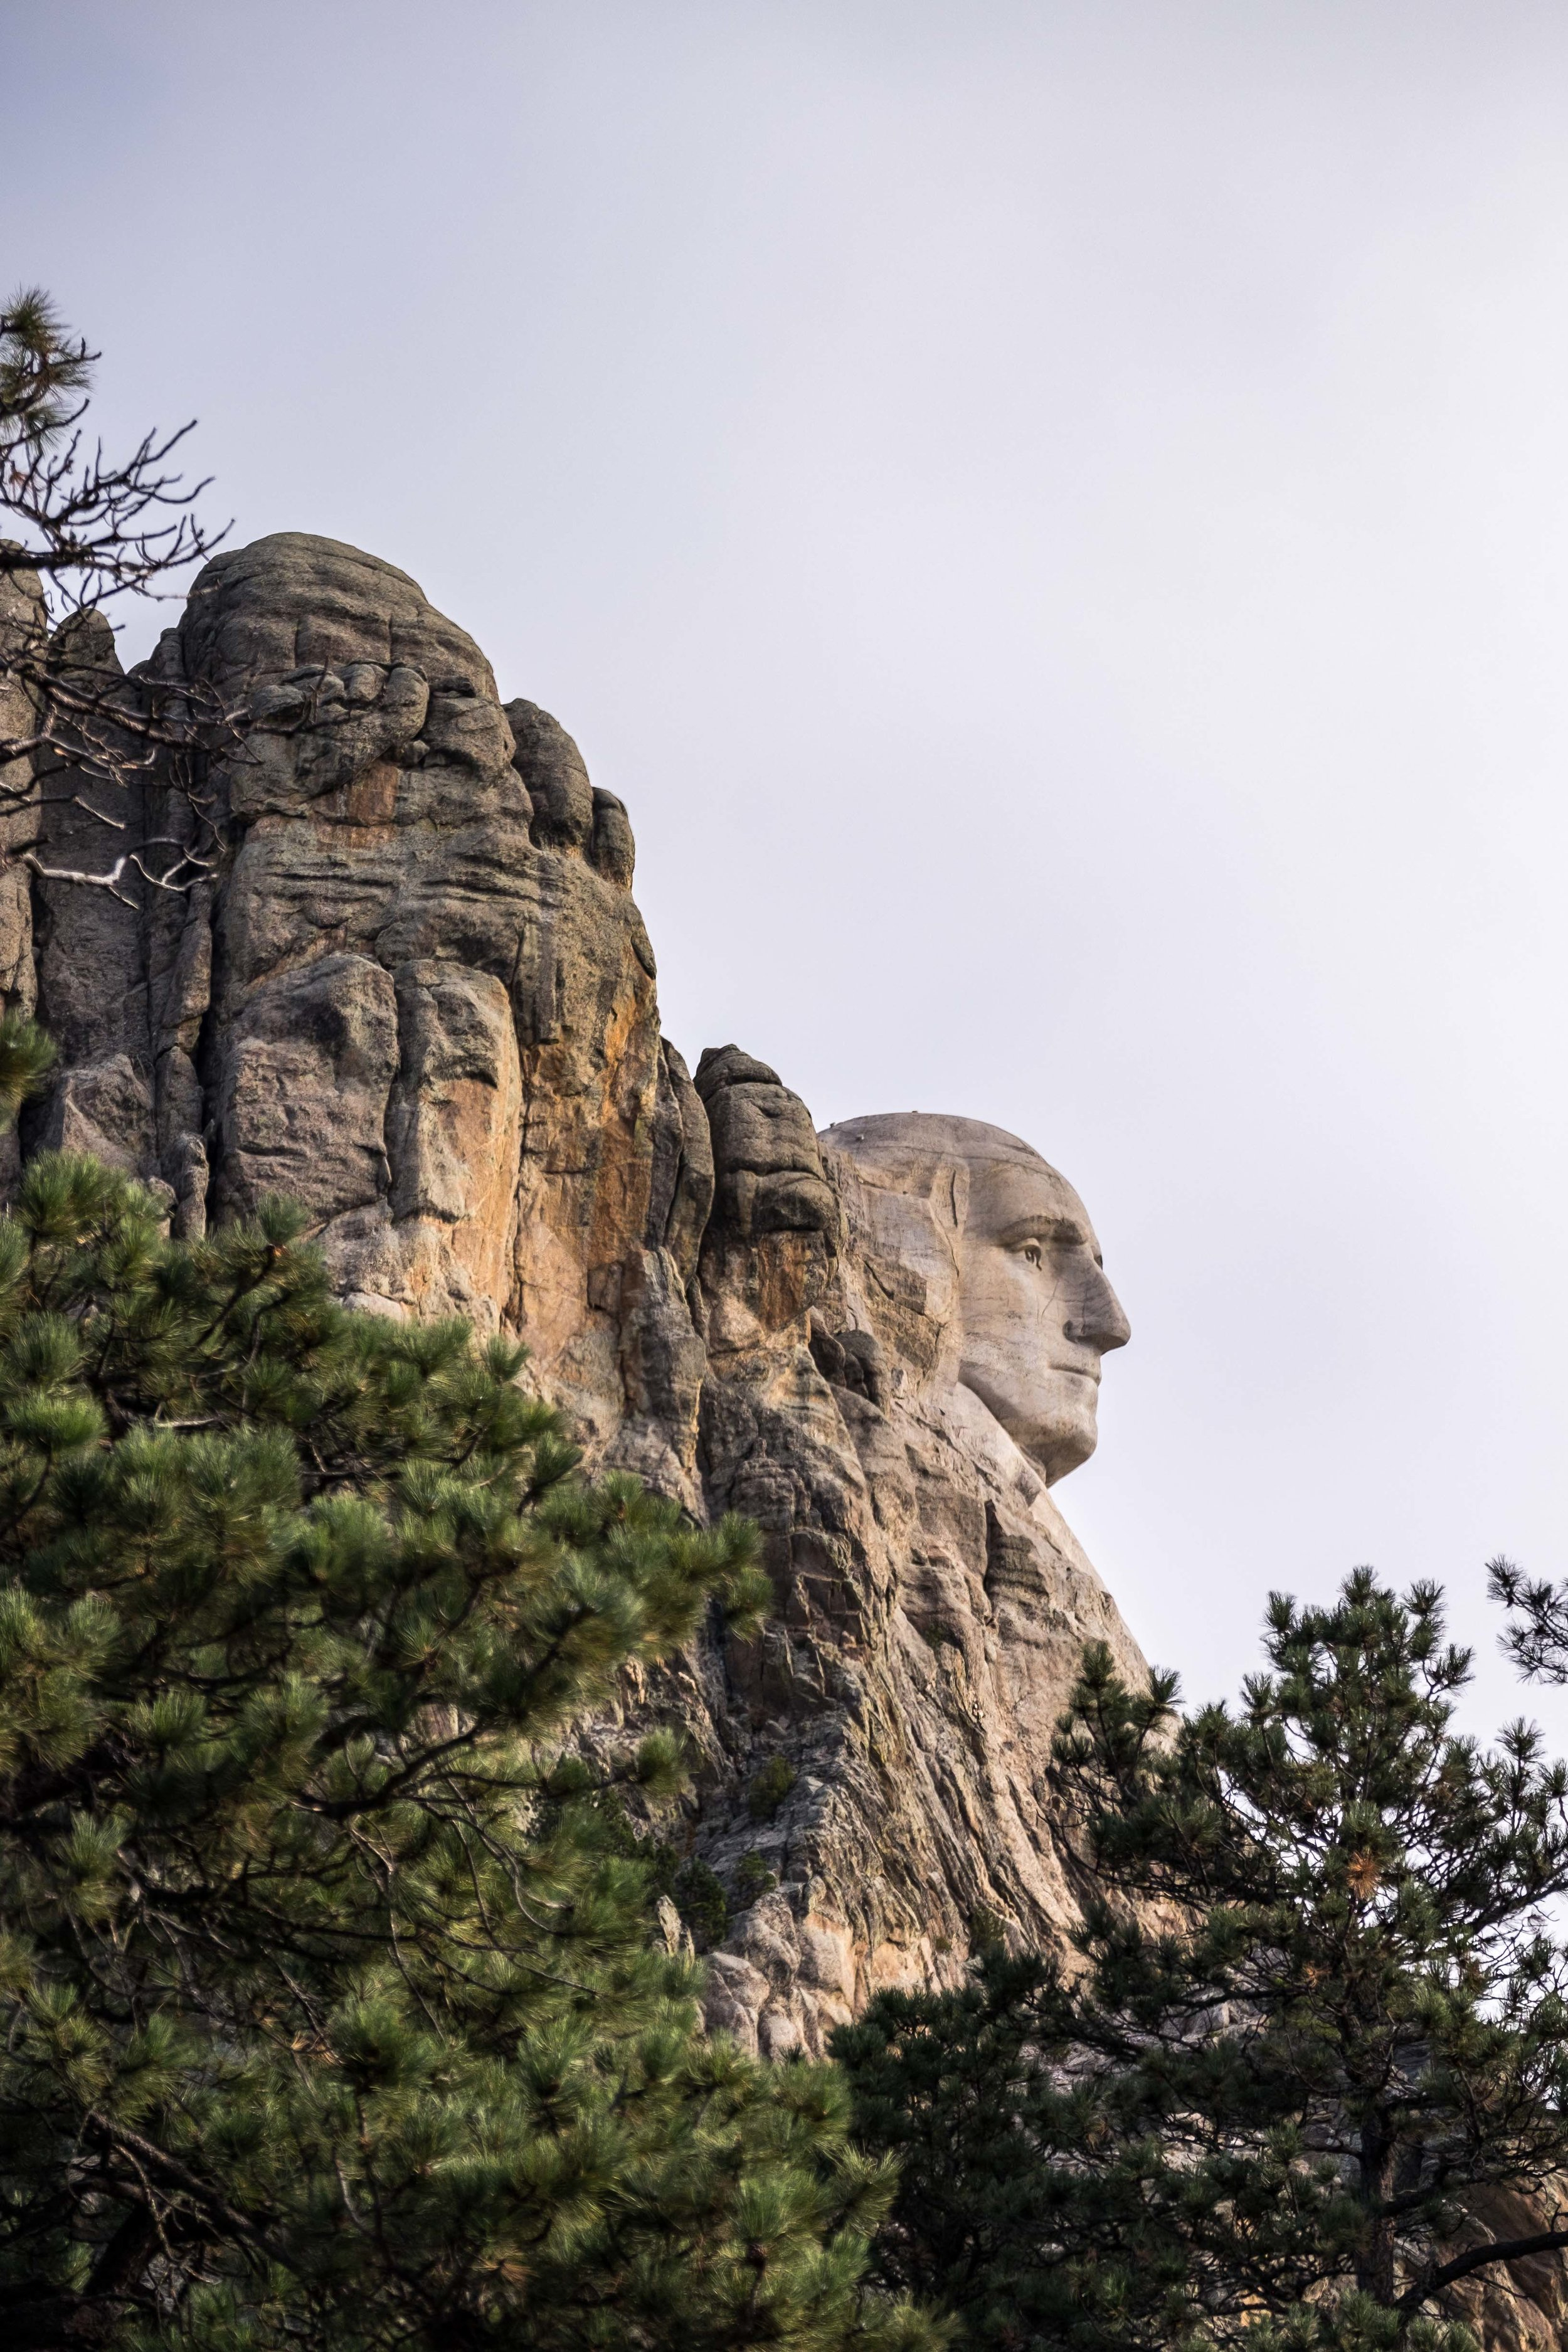 Mount Rushmore National Memorial in South Dakota.